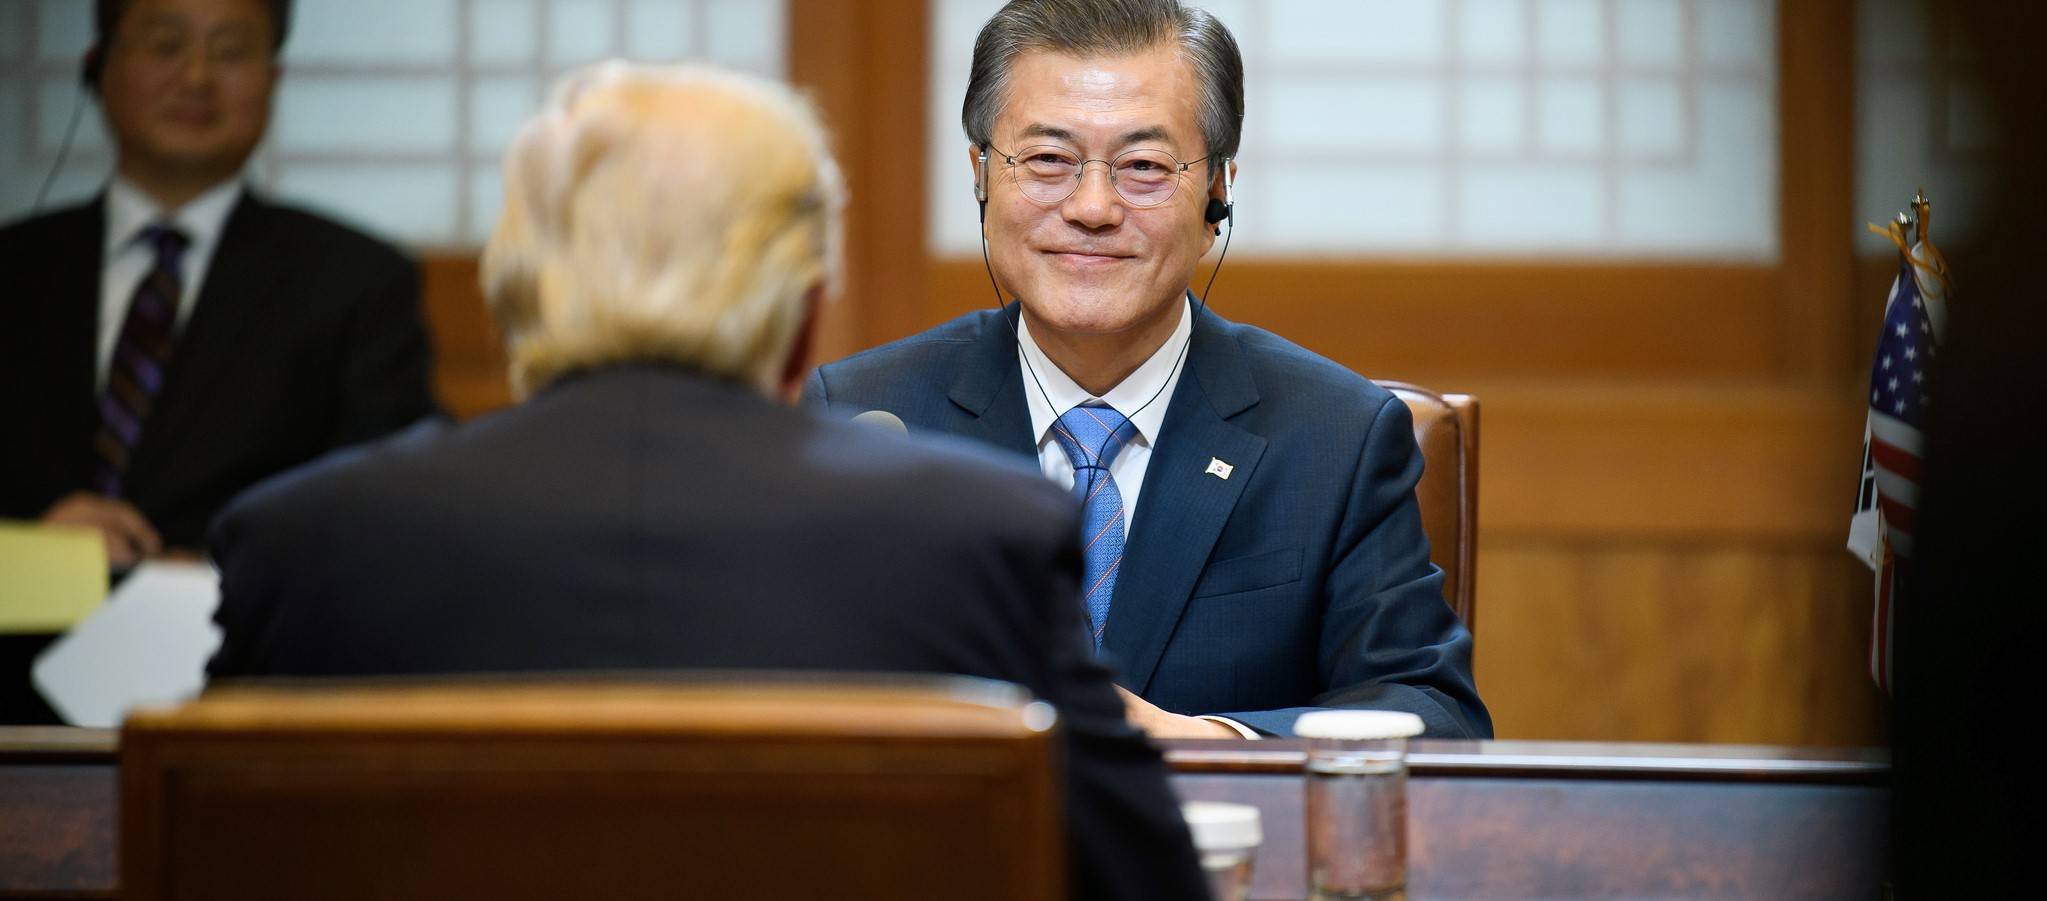 South Korean President Moon Jae-in meeting with US President Donald Trump, November 2017 (Photo: Republic of Korea/Flickr)